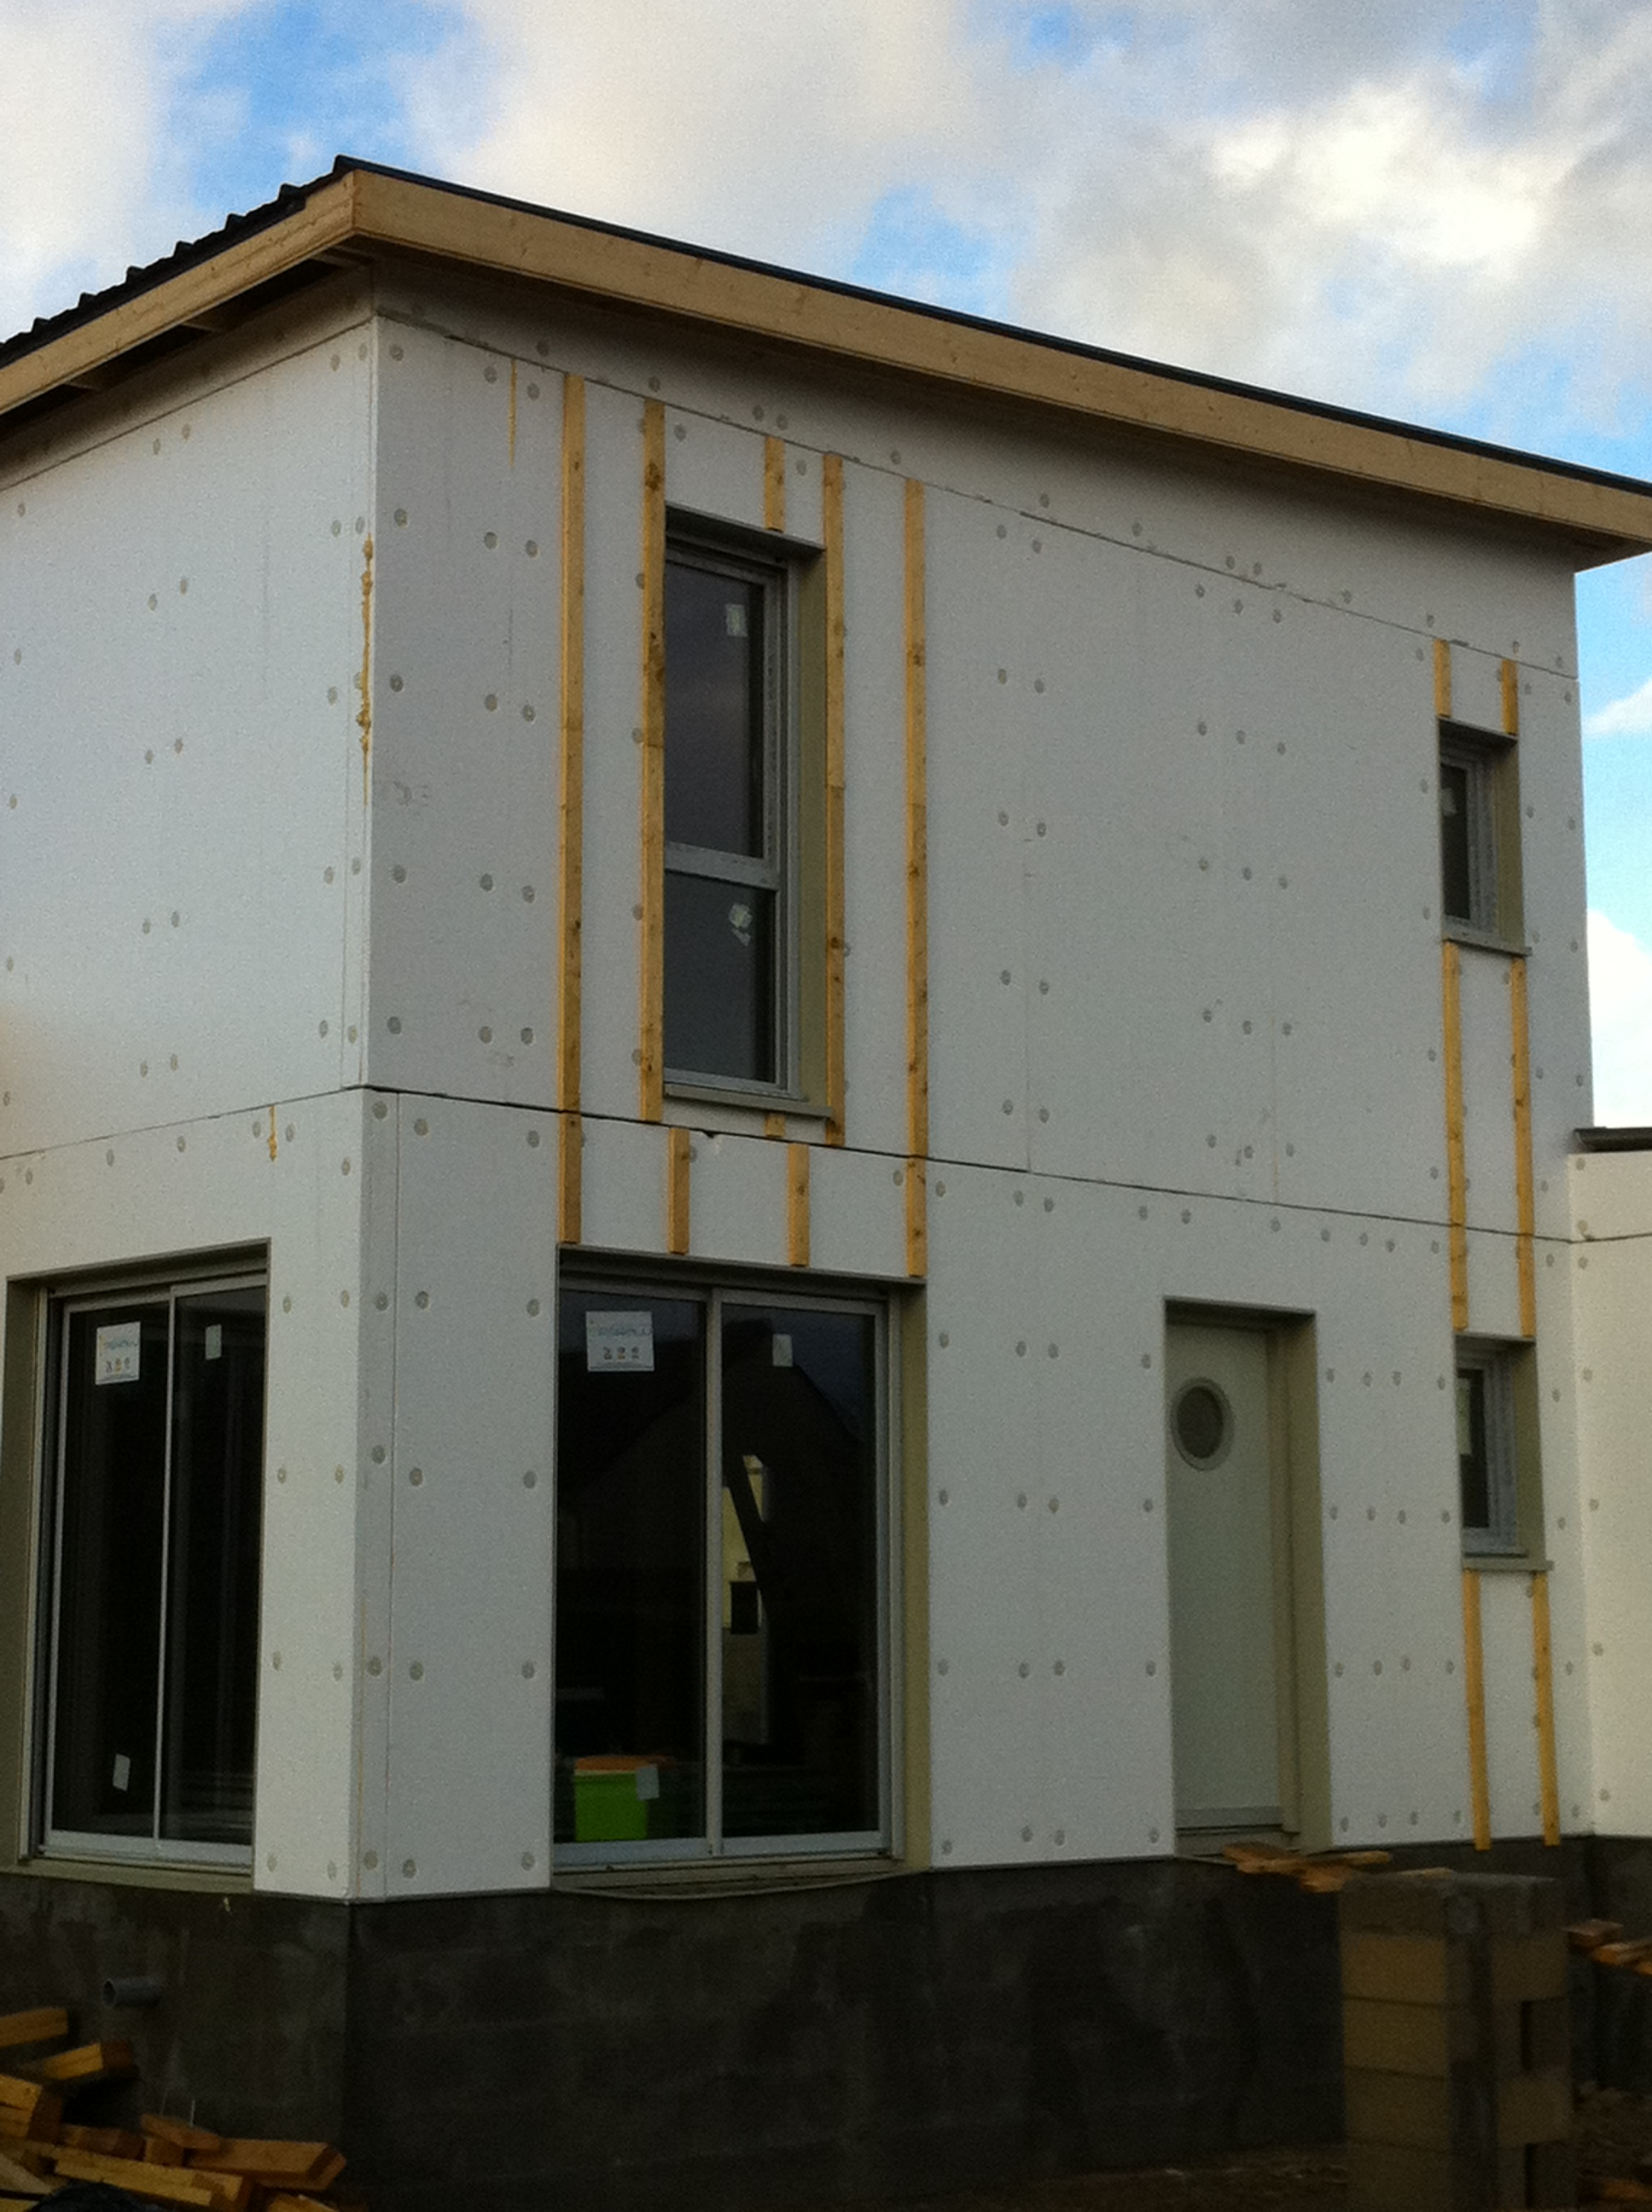 Cout construction maison natilia for Cout construction maison 100m2